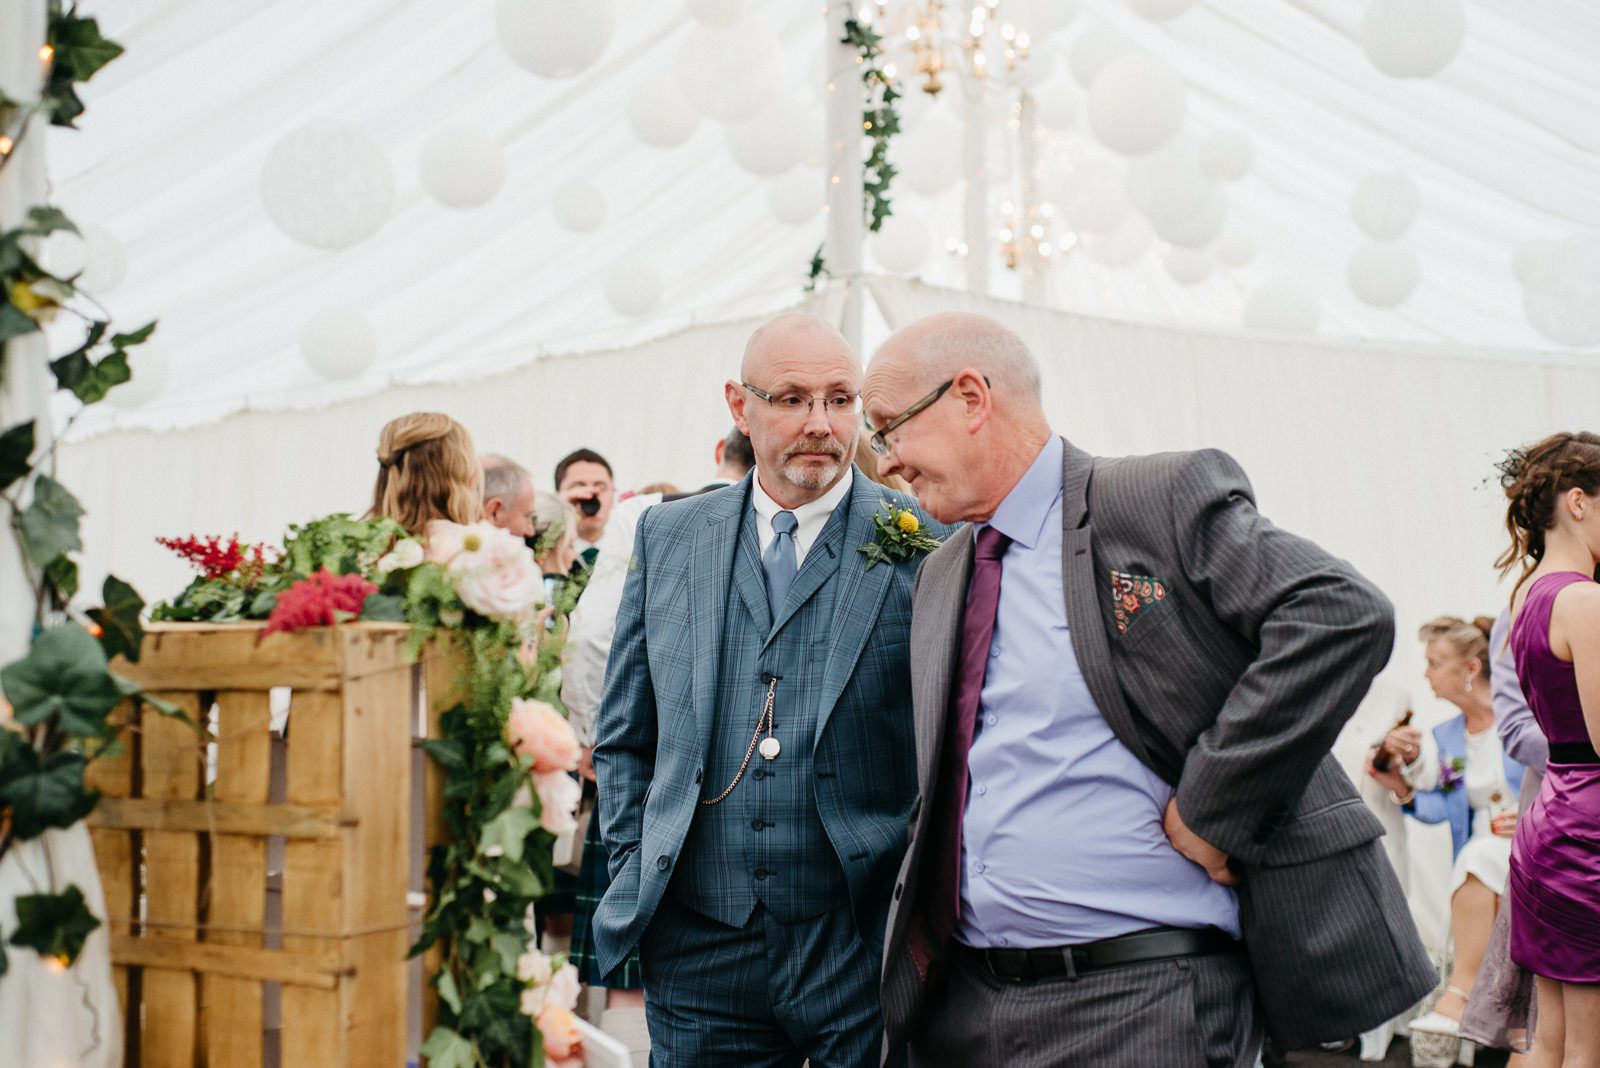 Father of the bride chatting with guests at alternative wedding